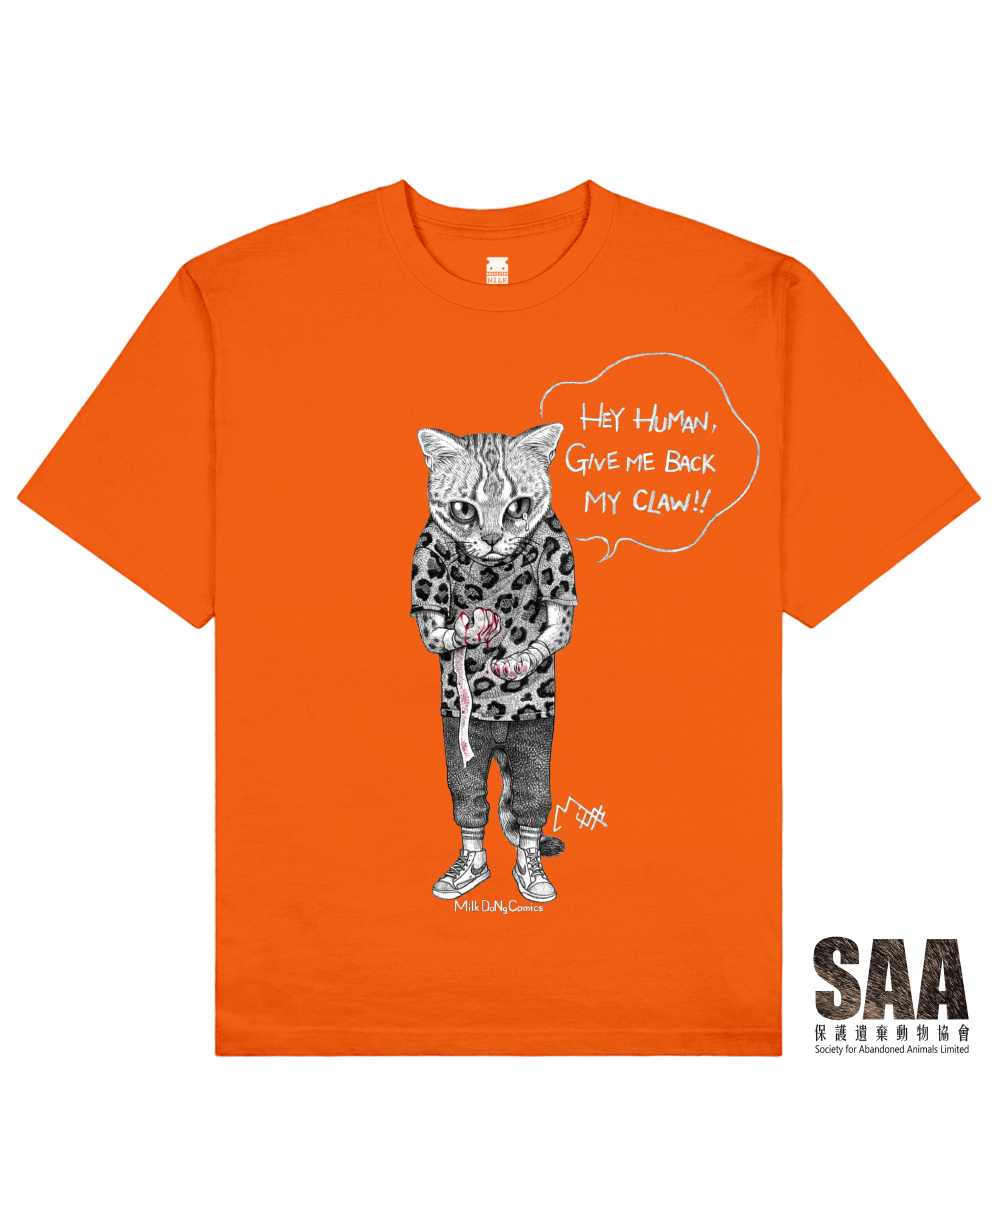 CLAWLESS CAT Printed T-Shirt in Orange - T-Shirts - Milk DoNg Comics - BRANMA